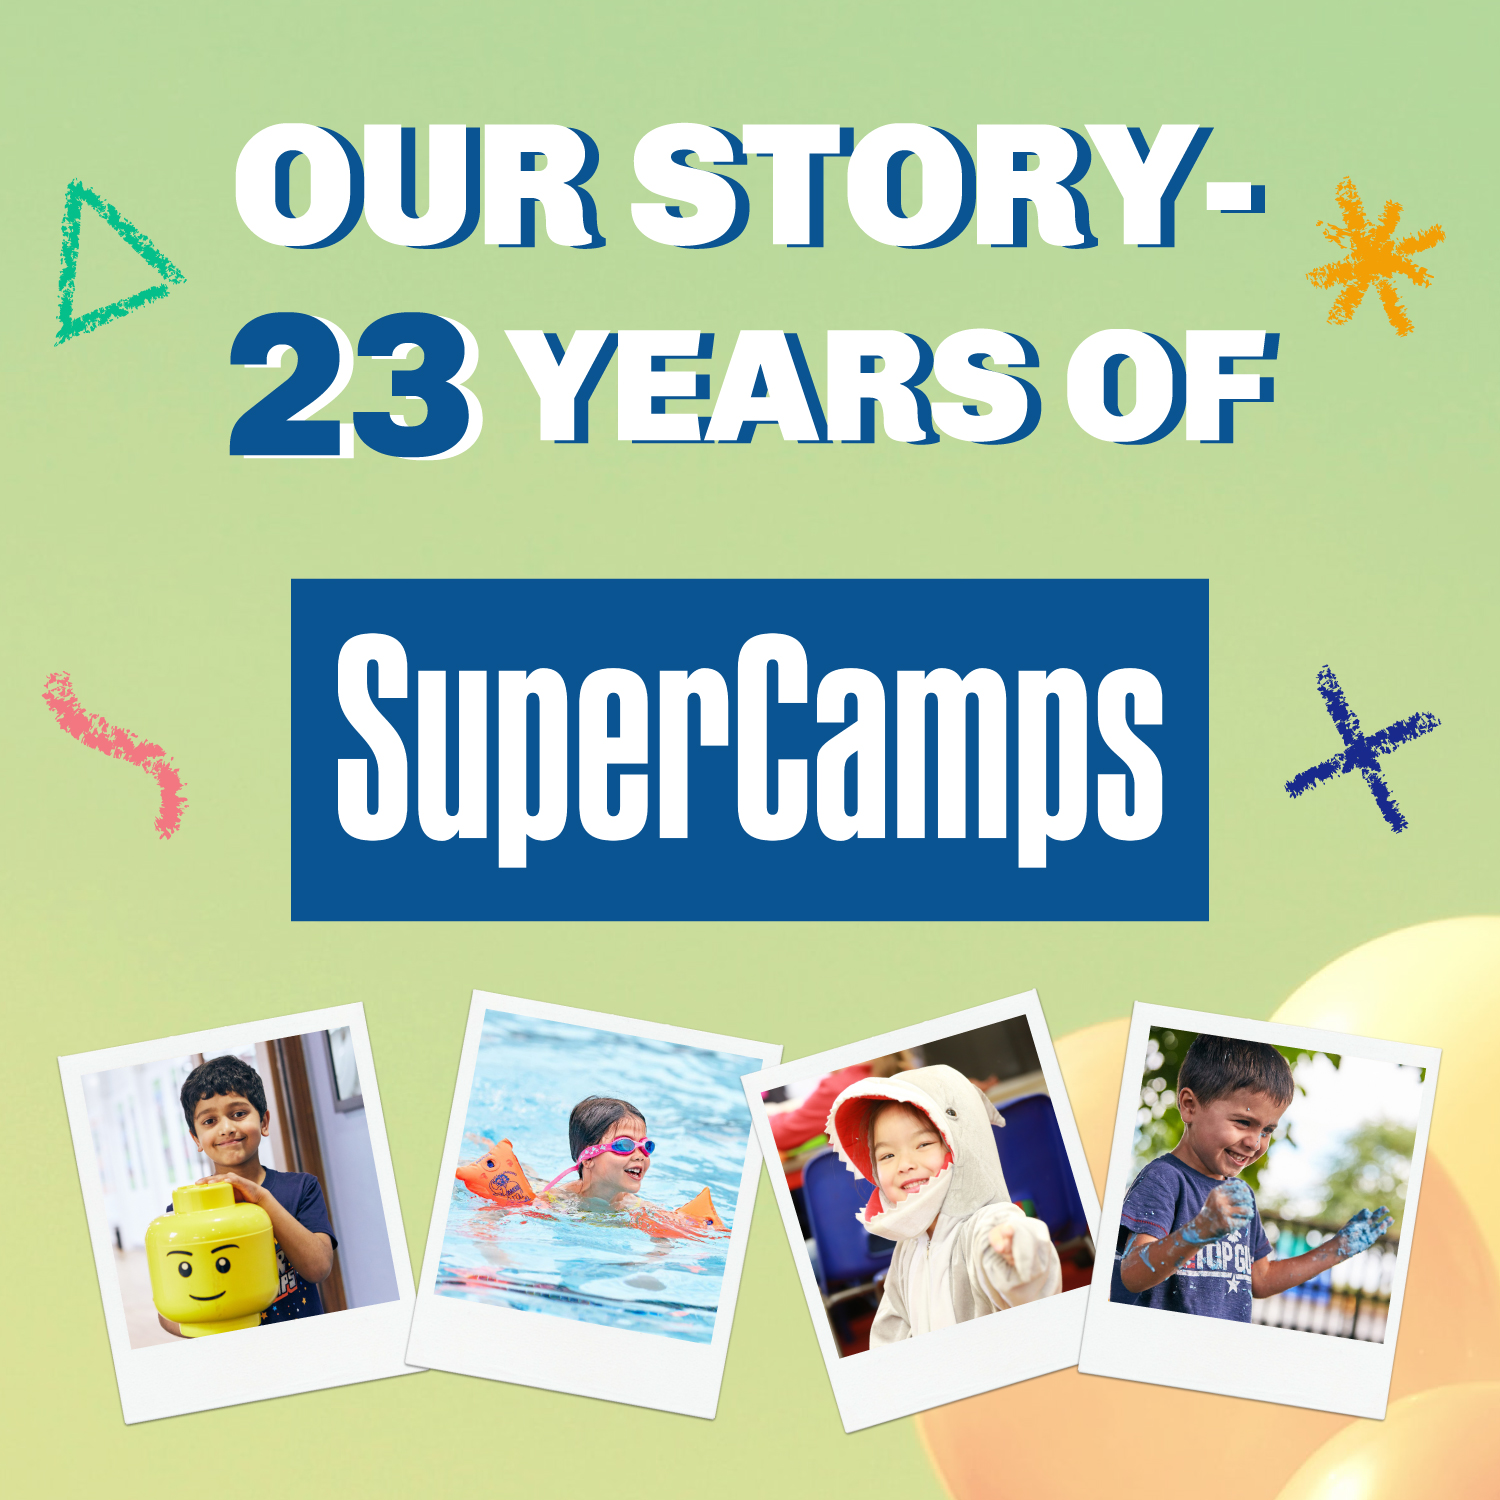 Our Story SuperCamps